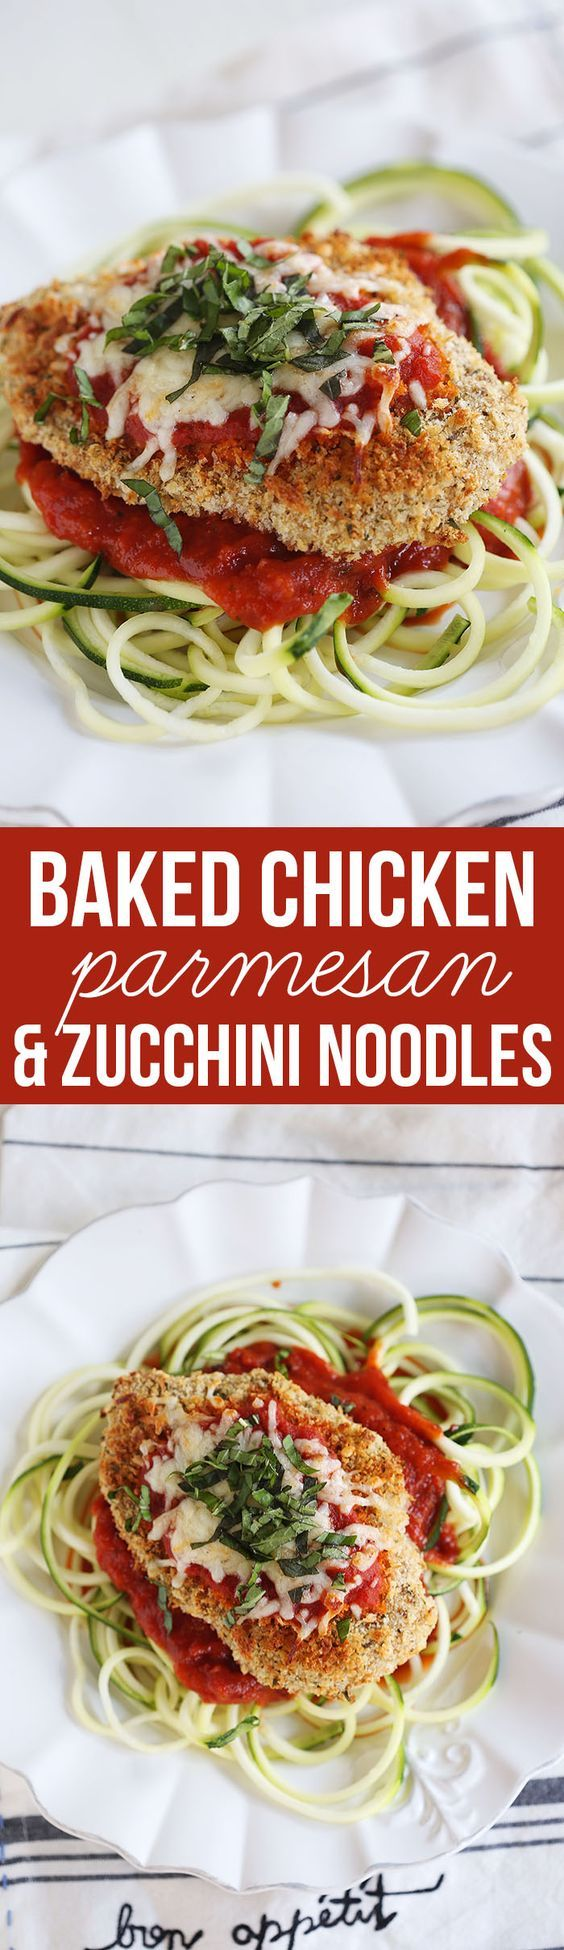 This recipe for Baked Chicken Parmesan with Zucchini Noodles is healthy, delicious and can easily be made in just 30 minutes or less! (Baking Pasta With Chicken)